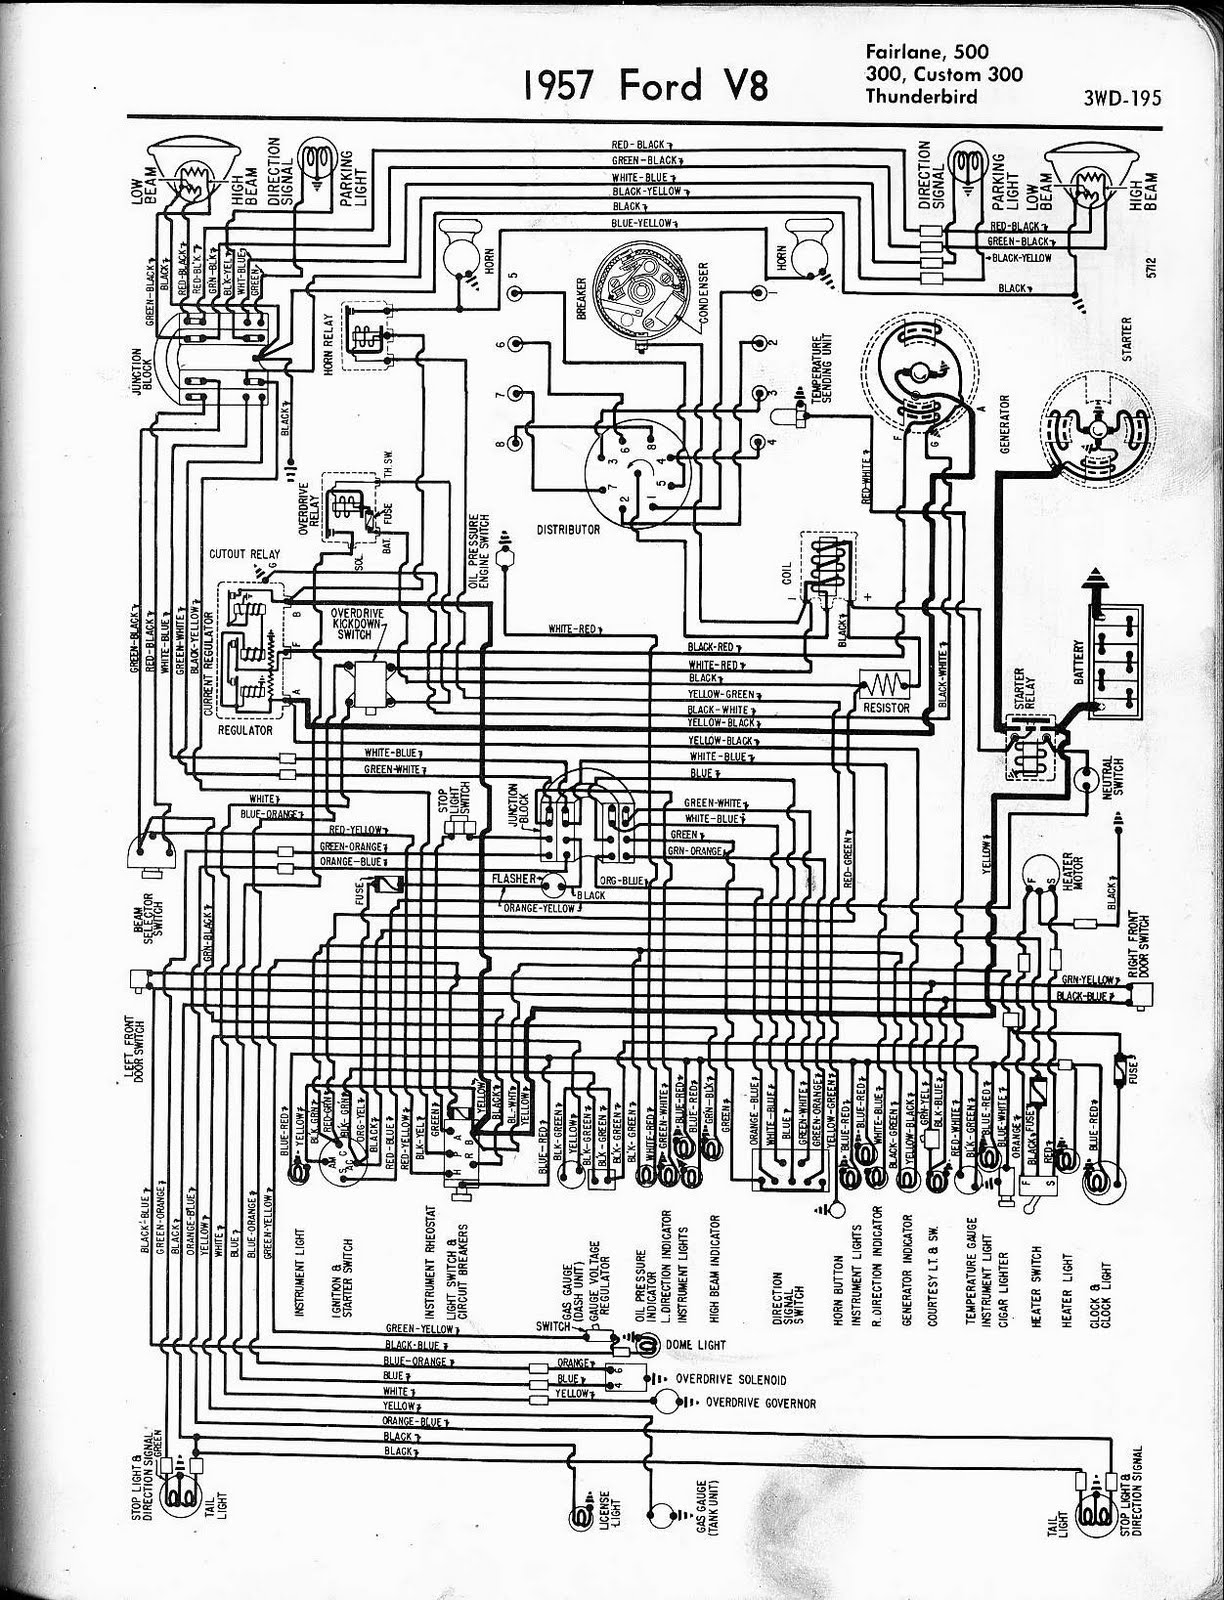 57 Thunderbird Wiring Diagram | wire-random Number Wiring Diagram - wire -random.pistolesimobili.it | Ford Thunderbird Wiring Diagrams |  | wiring diagram library